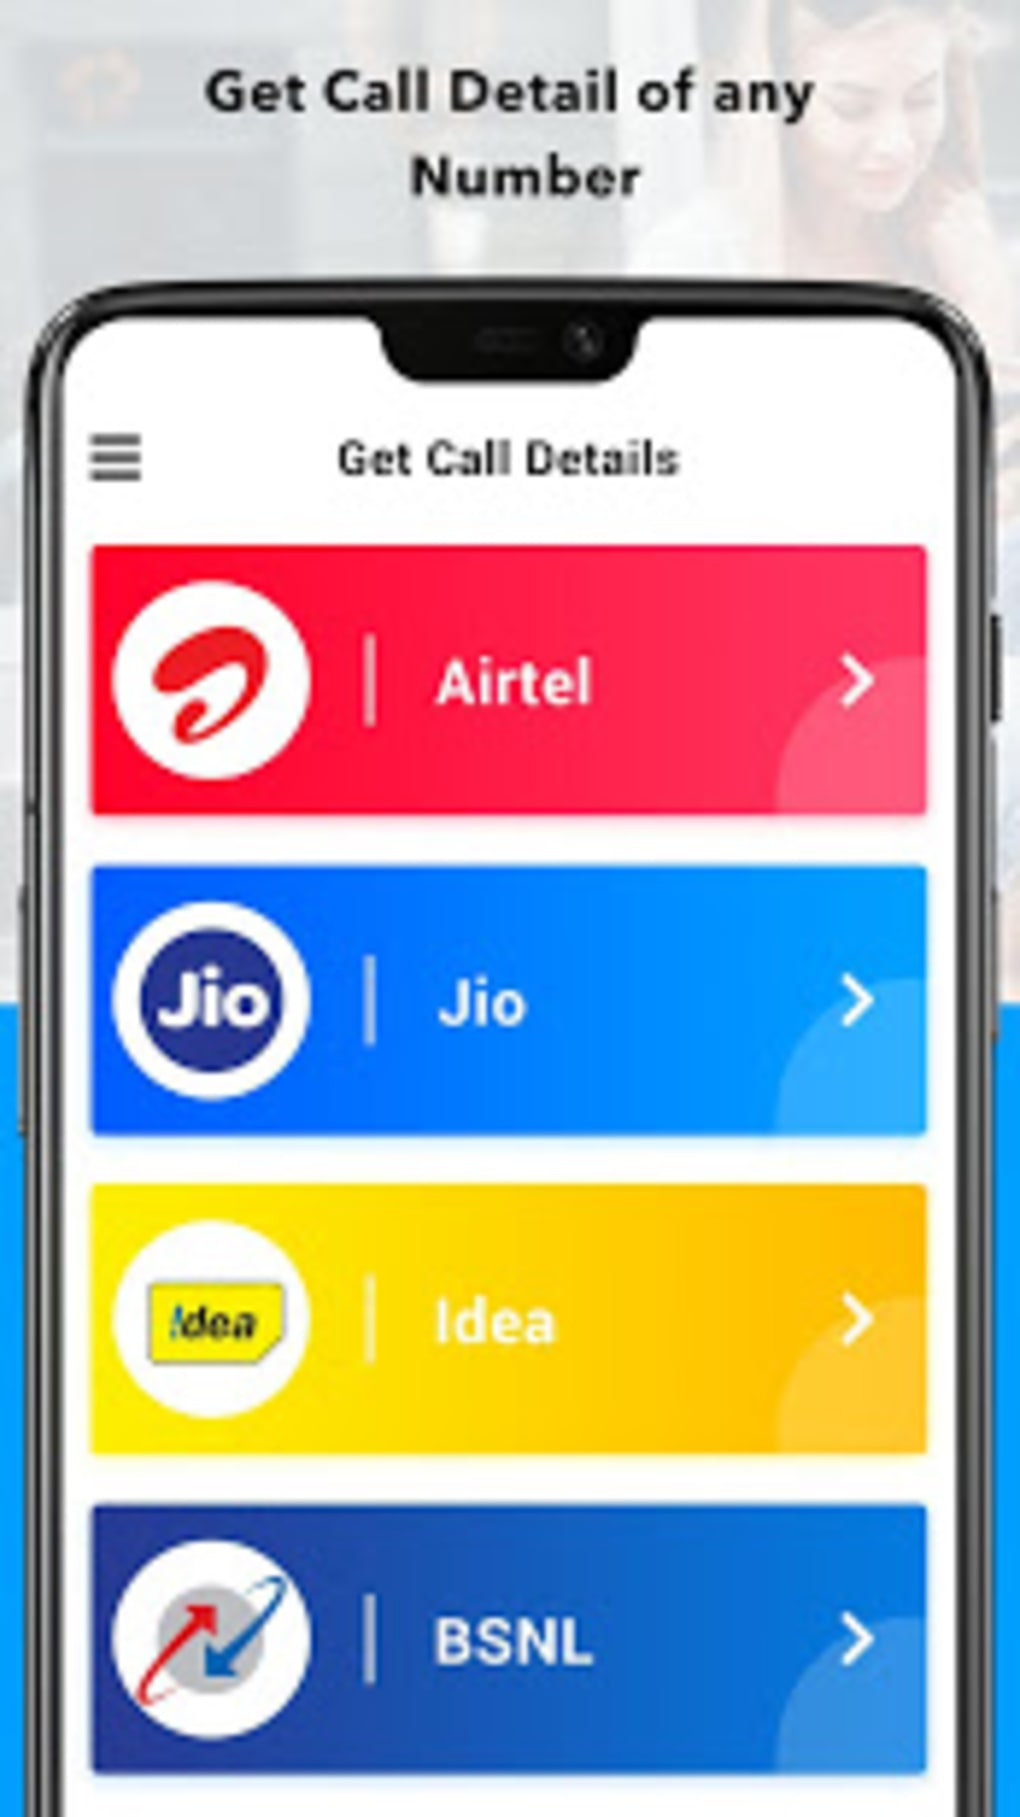 How To Find Have Call Detail Of Number phone pro for Android